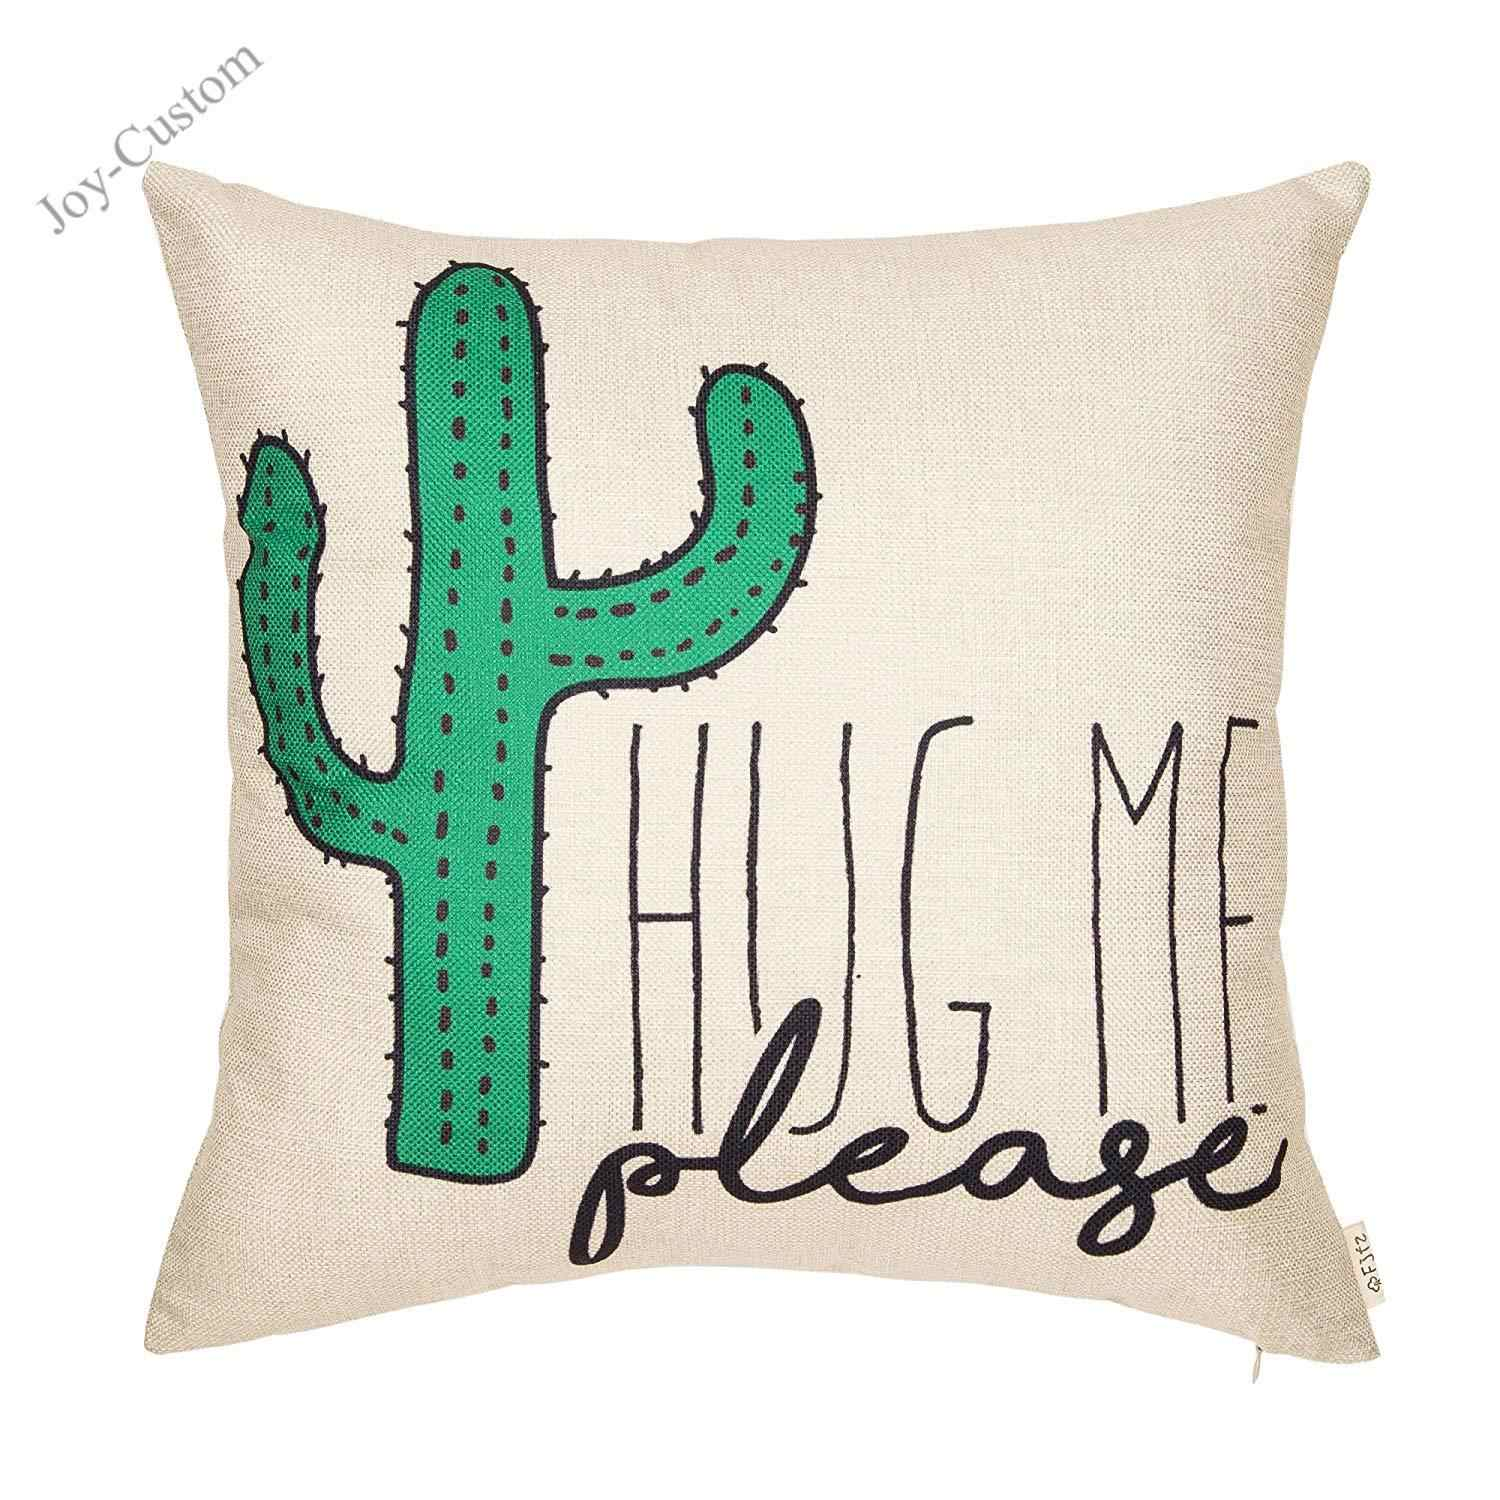 Picture of: Please Hug Me Cactus Funny Quote Decor Cotton Linen Throw Pillow Case Cushion Cover Christmas Pillow Cover Decorative Pillows Cushion Cover Aliexpress